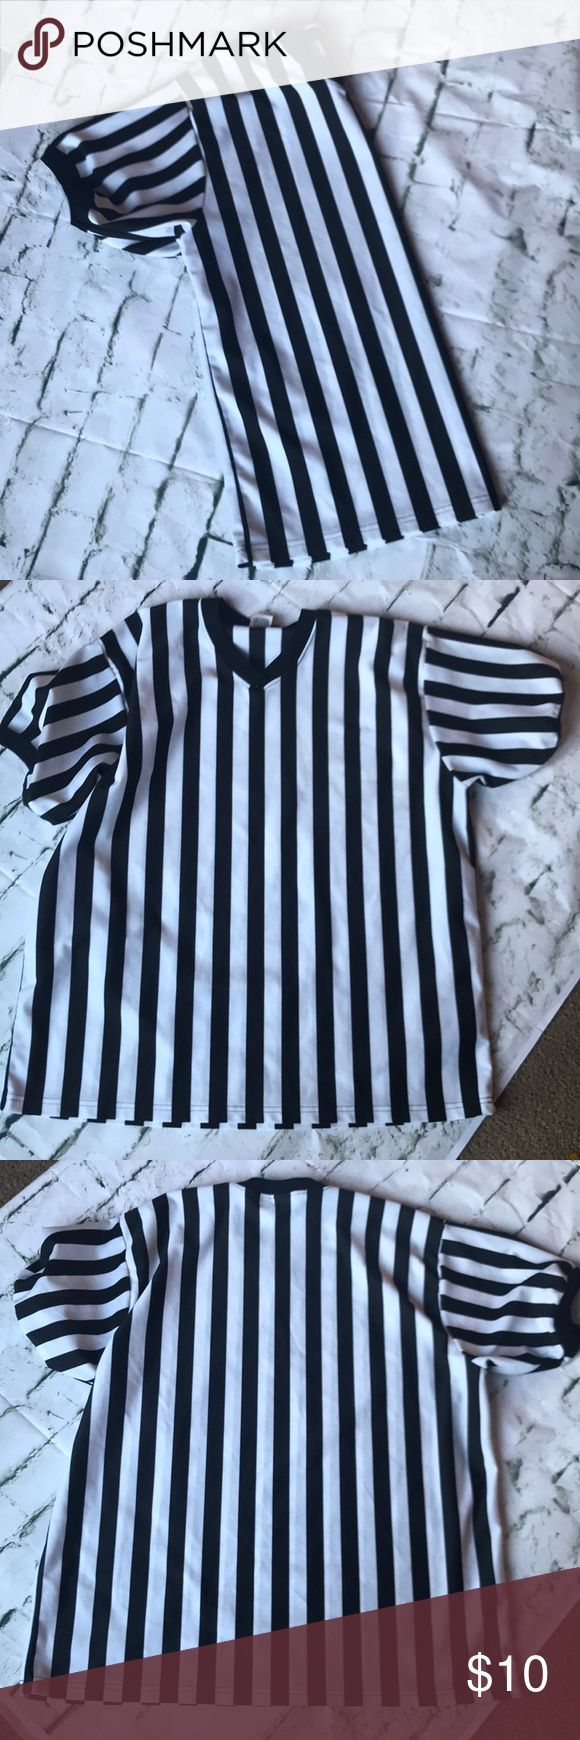 Referee shirt Men's referee shirt in EUC Shirts